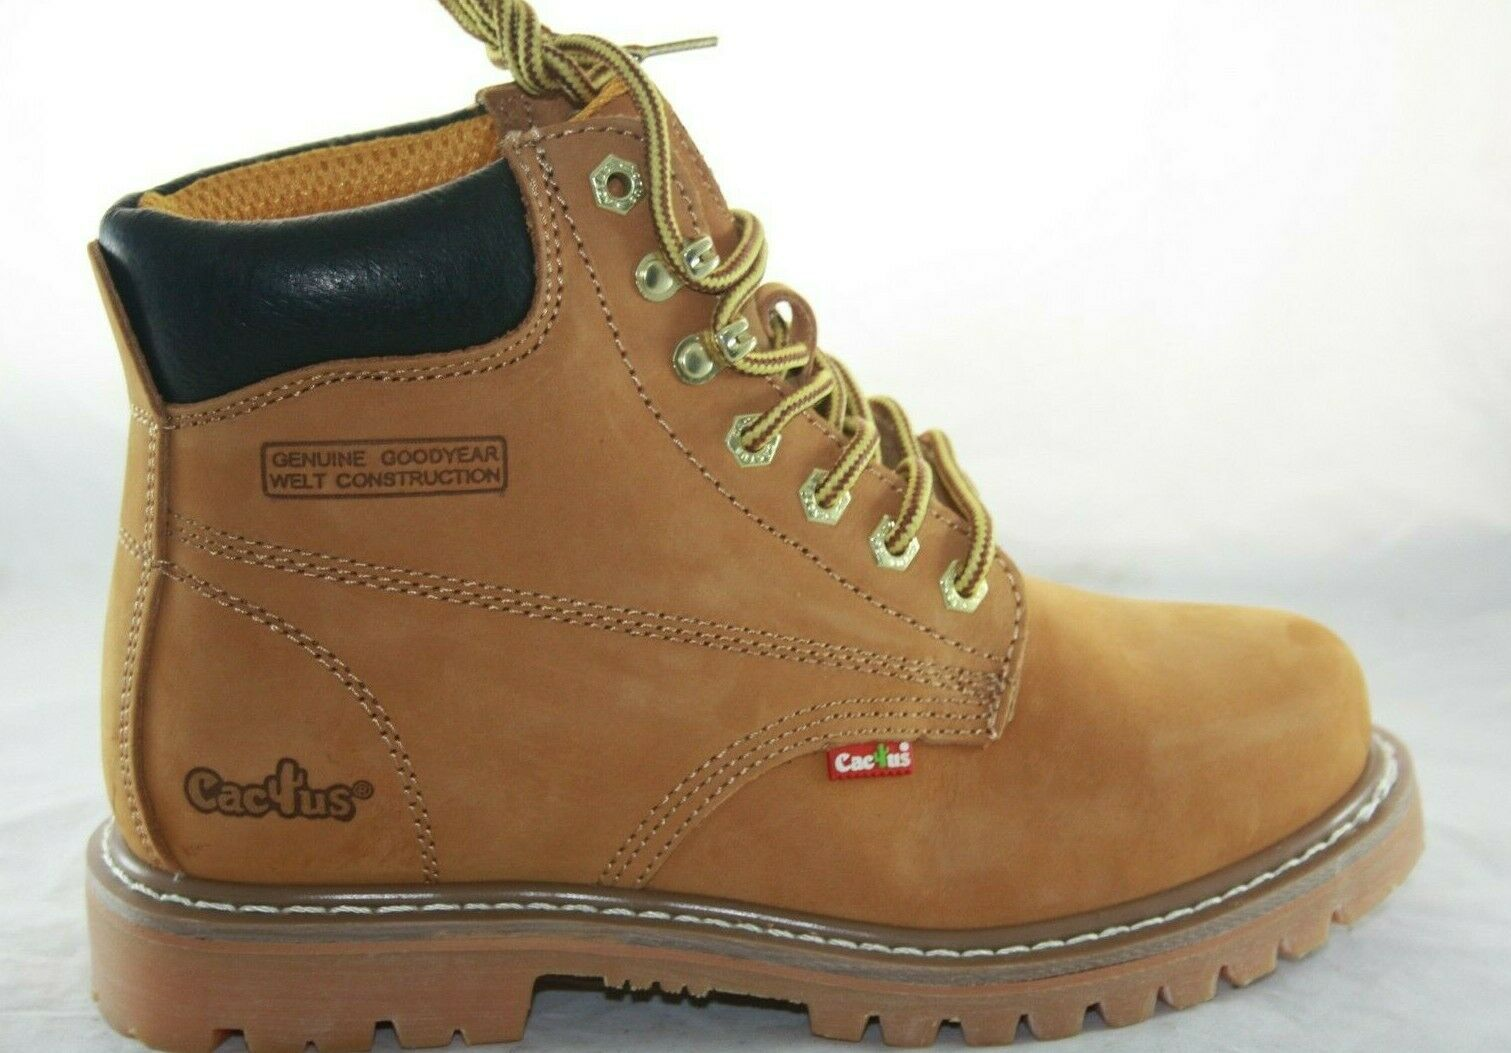 MEN'S CACTUS 611 TAN WORK BOOTS OIL RESISTANT NUBUCK LEATHER RUBBER OUTSOLE